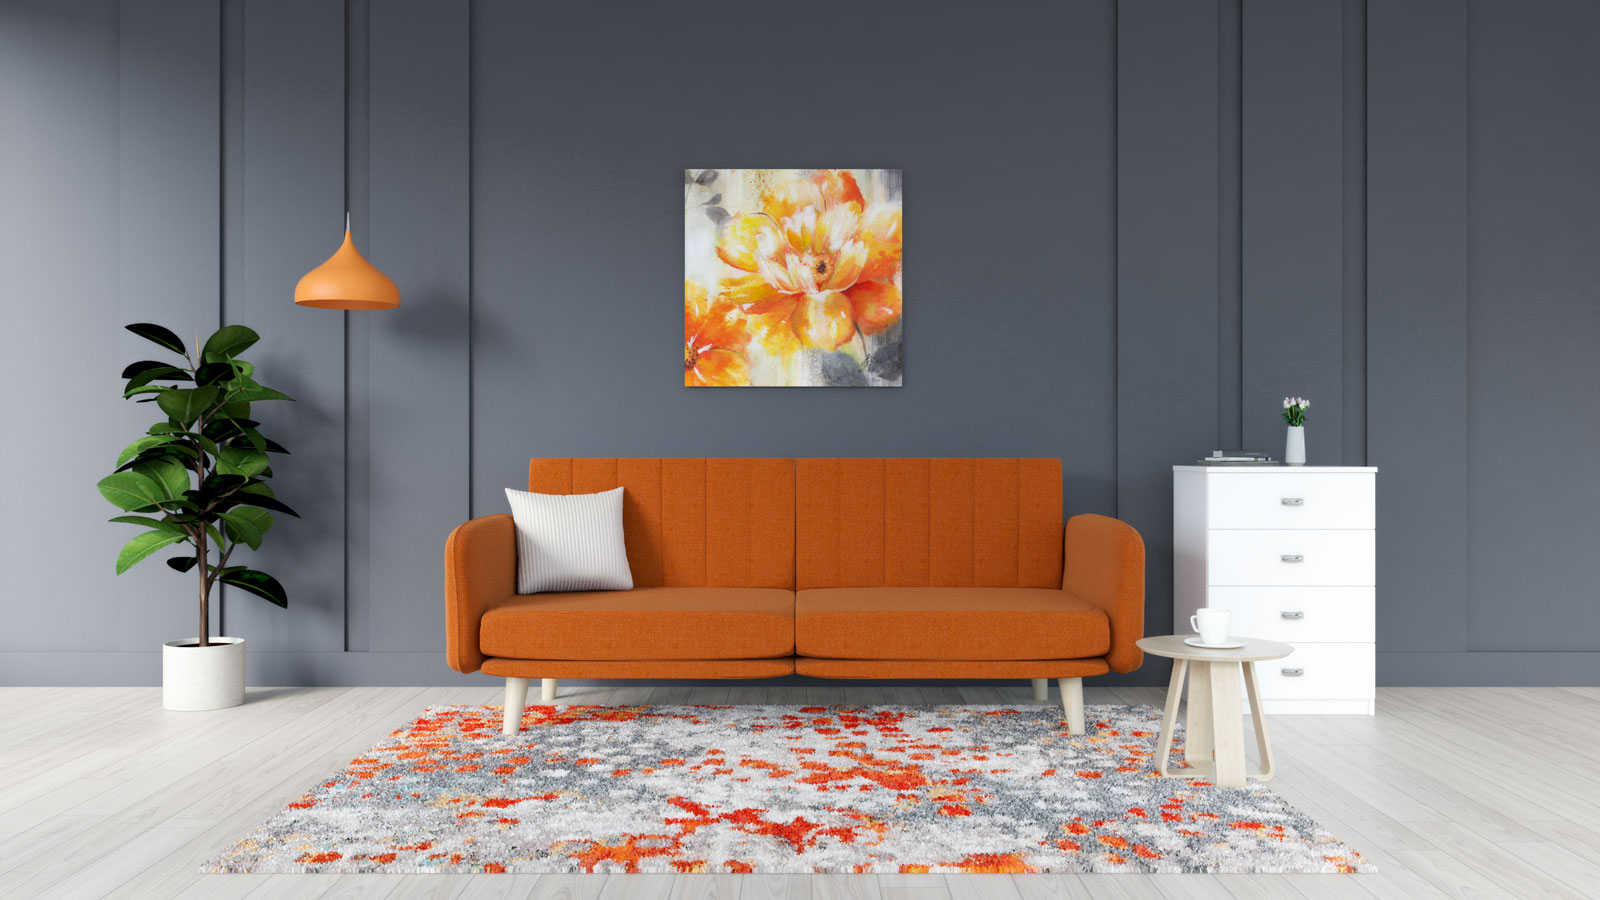 Orange and gray rug in living room